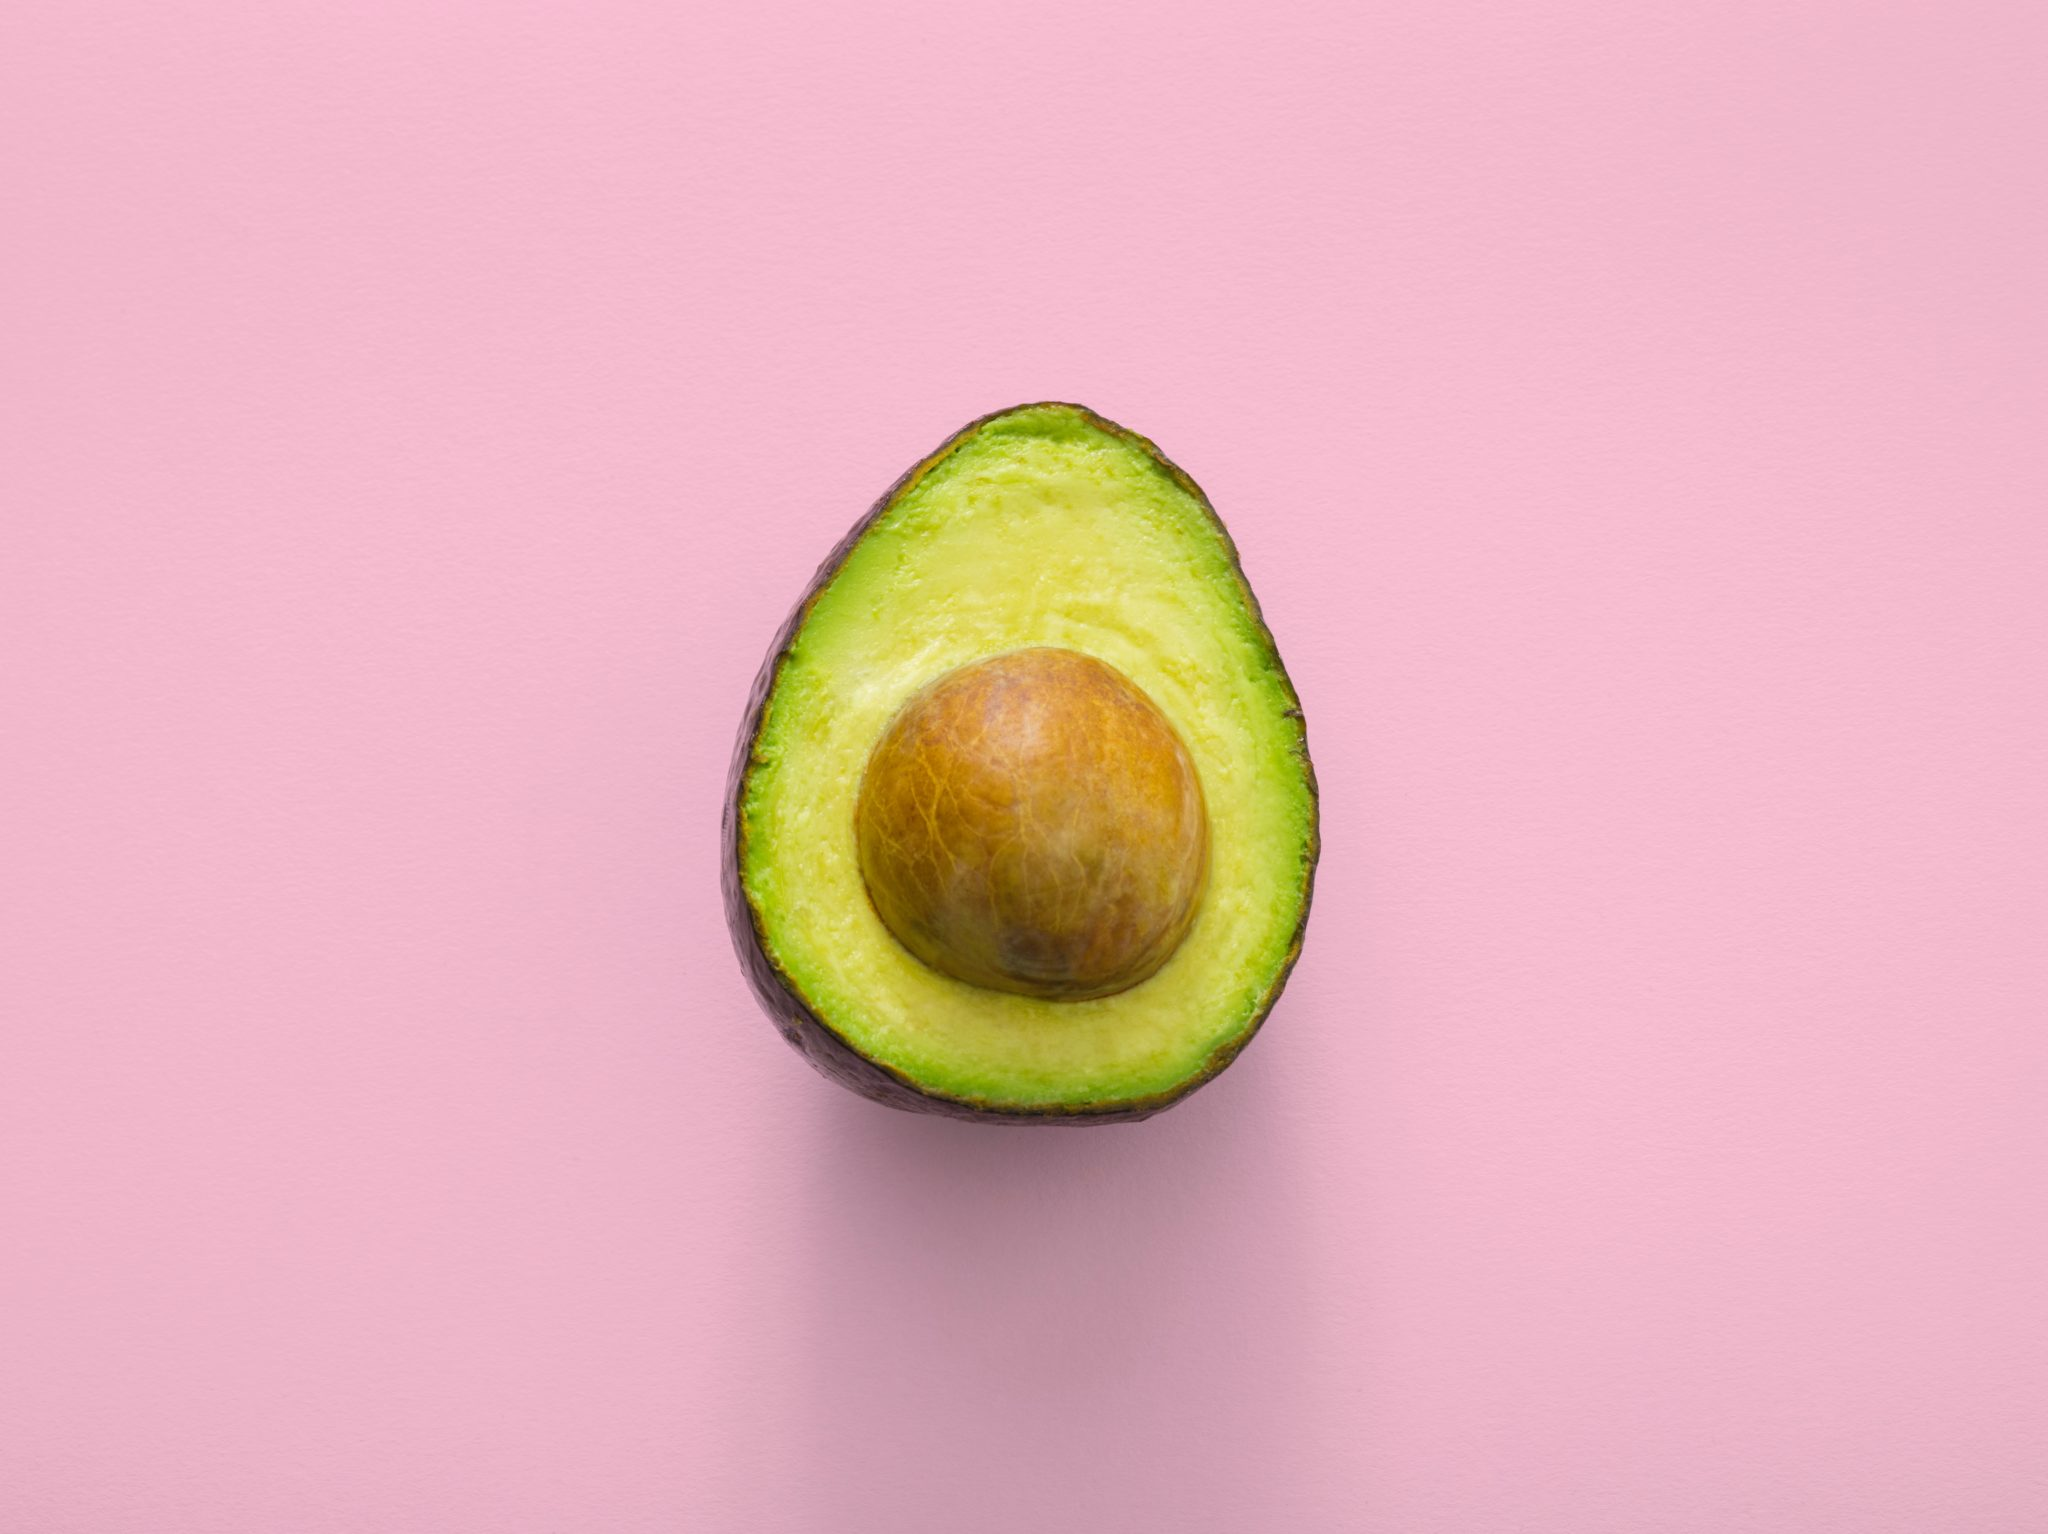 close up of half of a ripe avocado against a light pink background